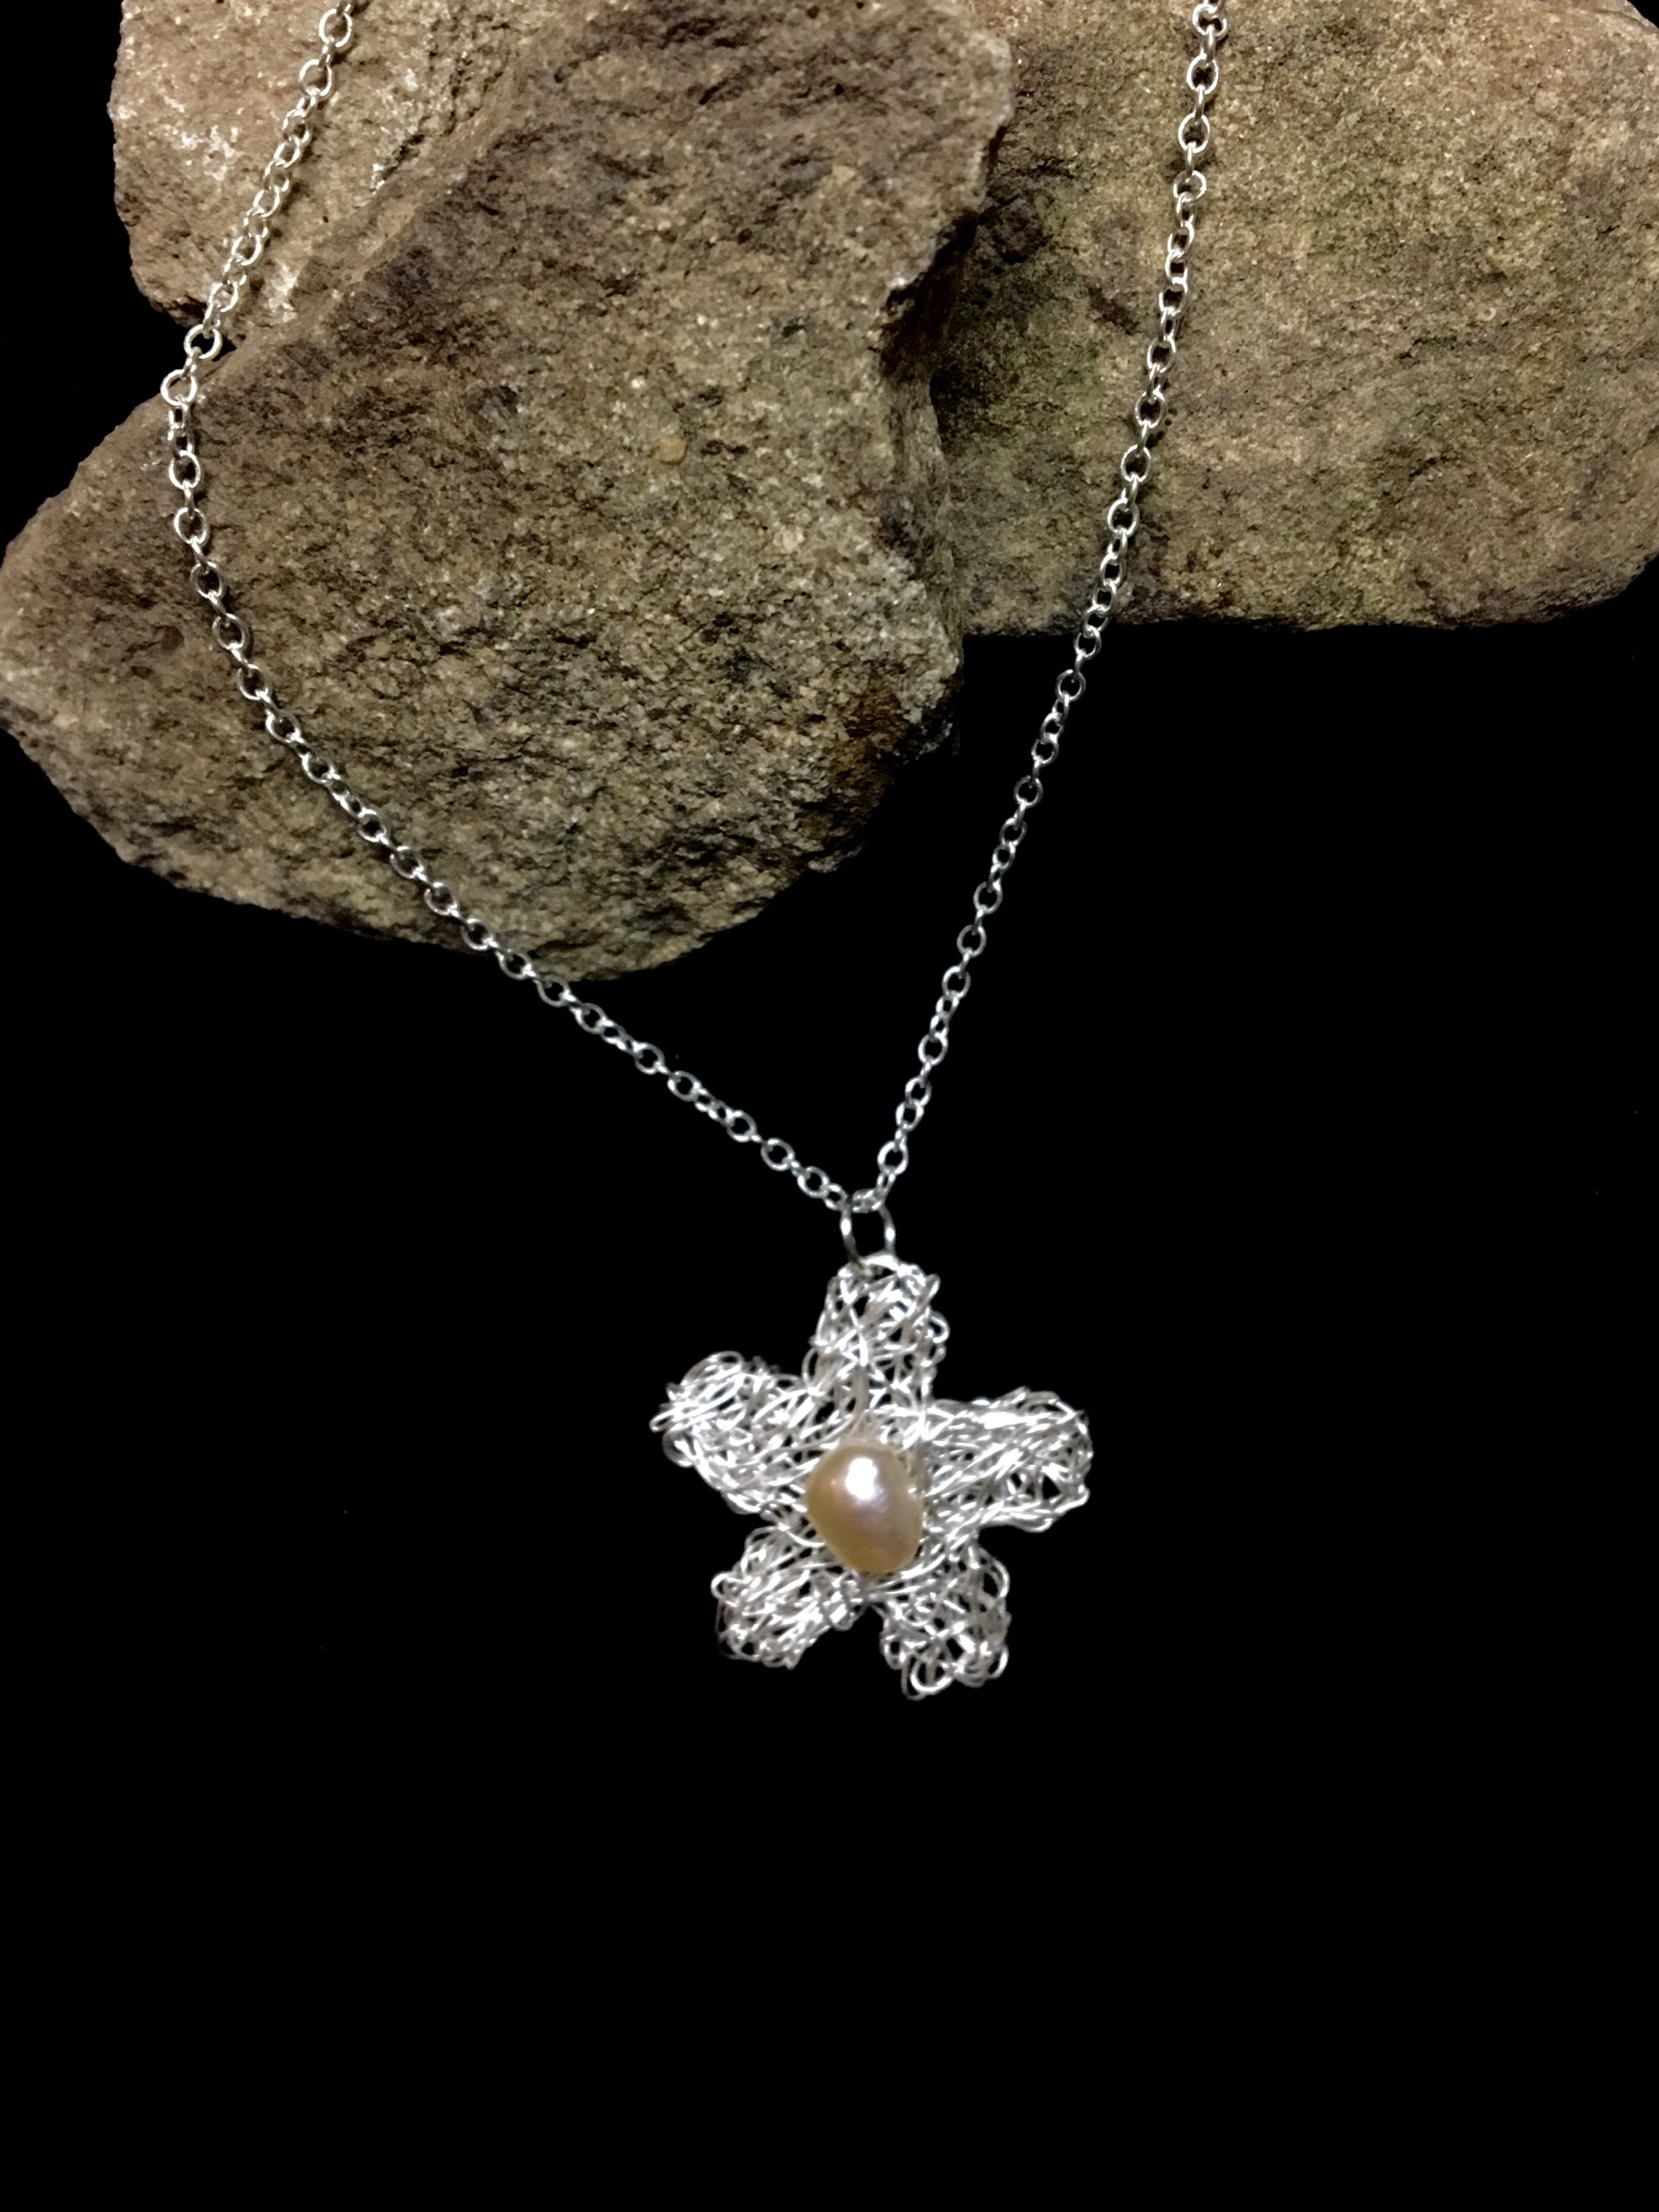 Candid Claire Necklace - Tangled Flower - Silver plated